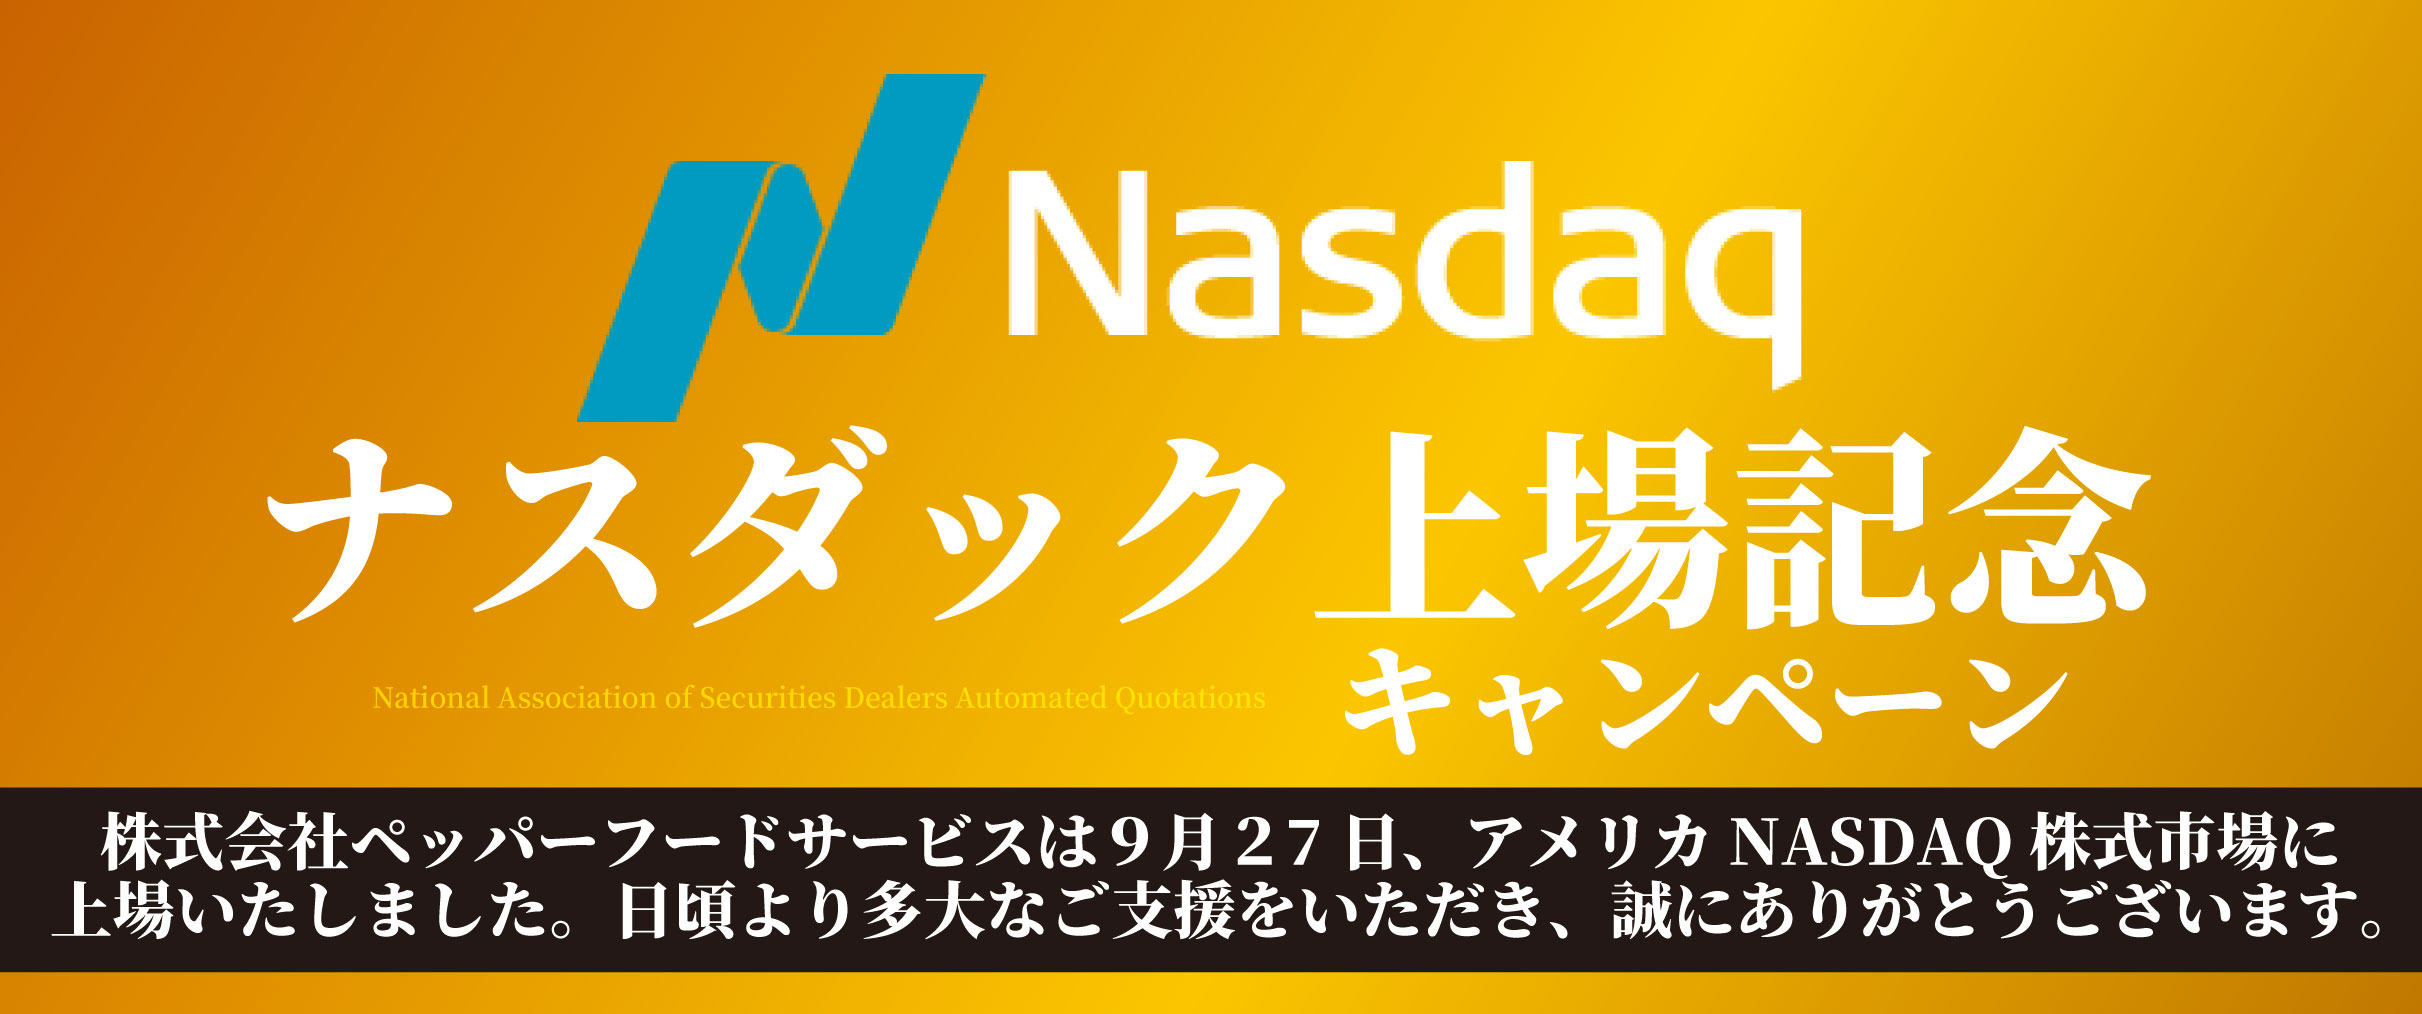 """NASDAQ listed memory"" application stamp campaign"